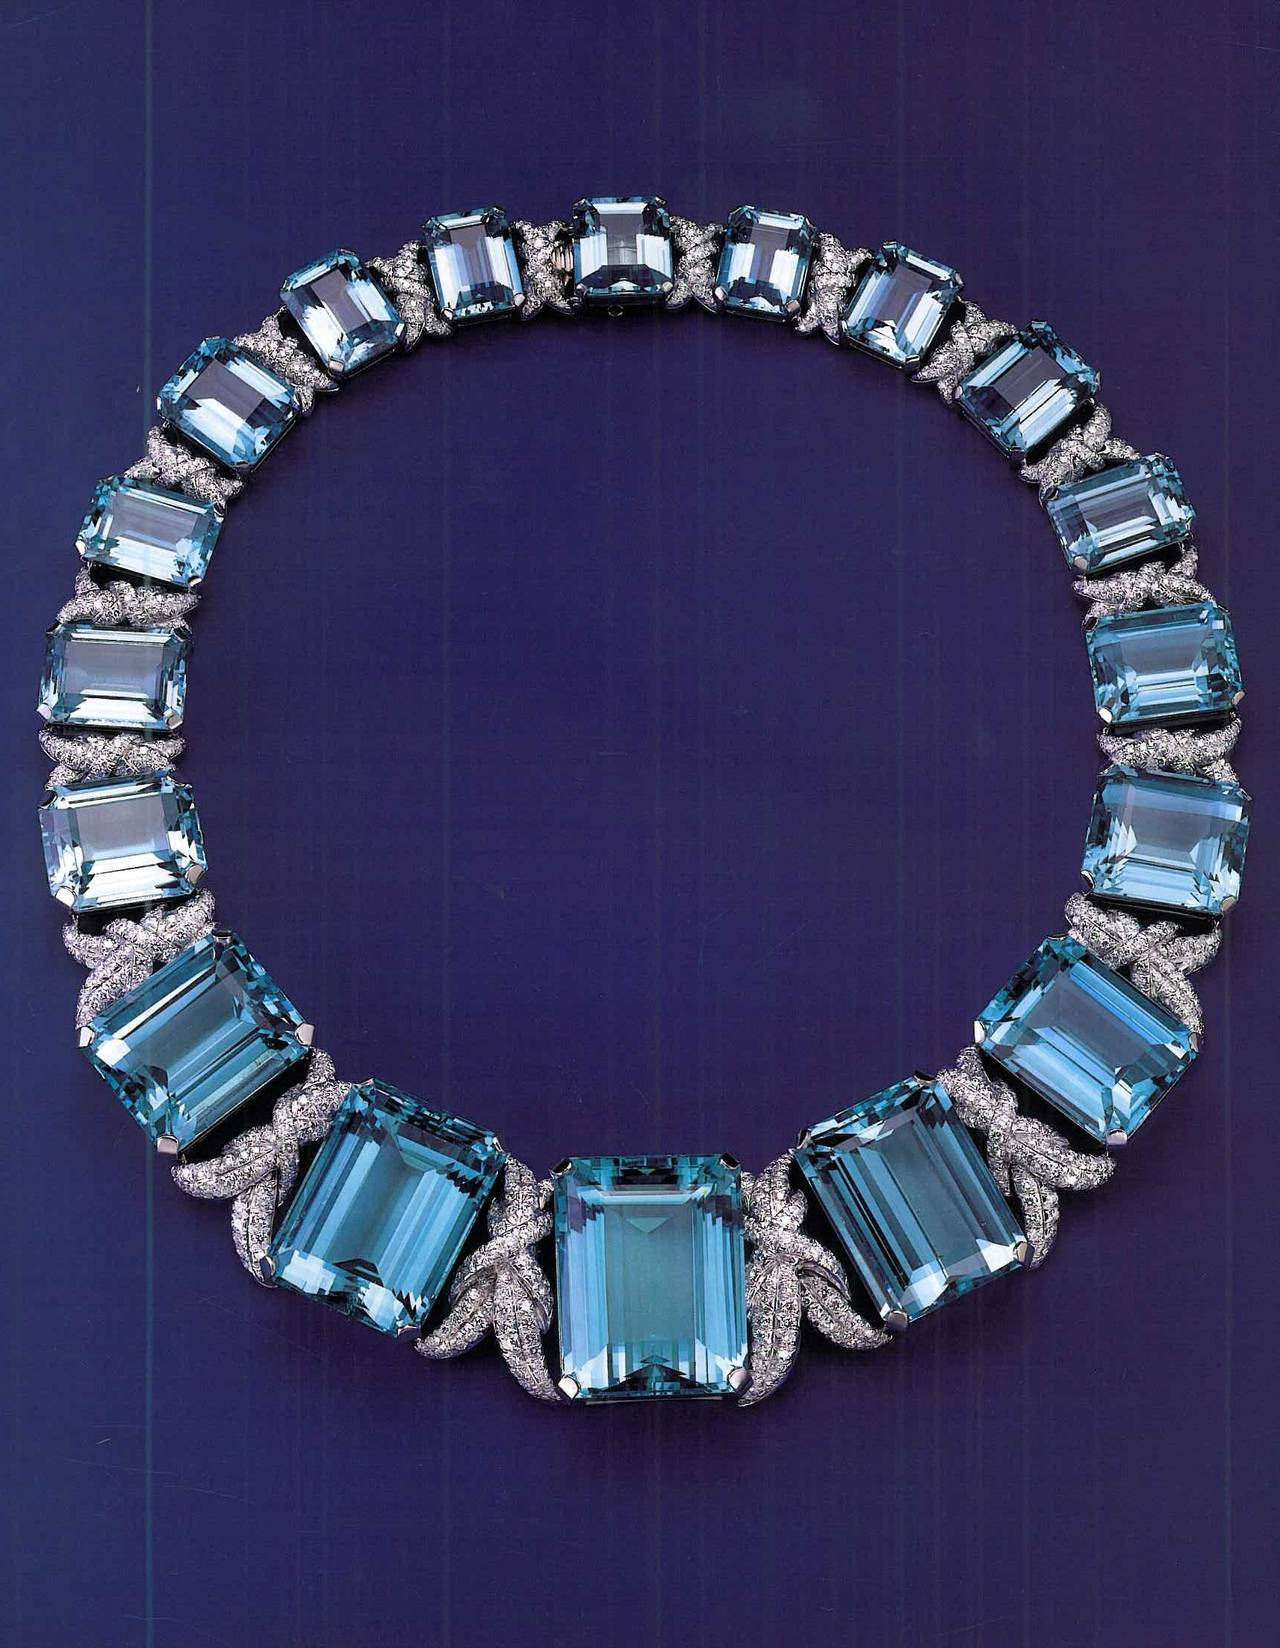 Stand Out Designs Jewelry : Book of quot verdura the life and work a master jeweler